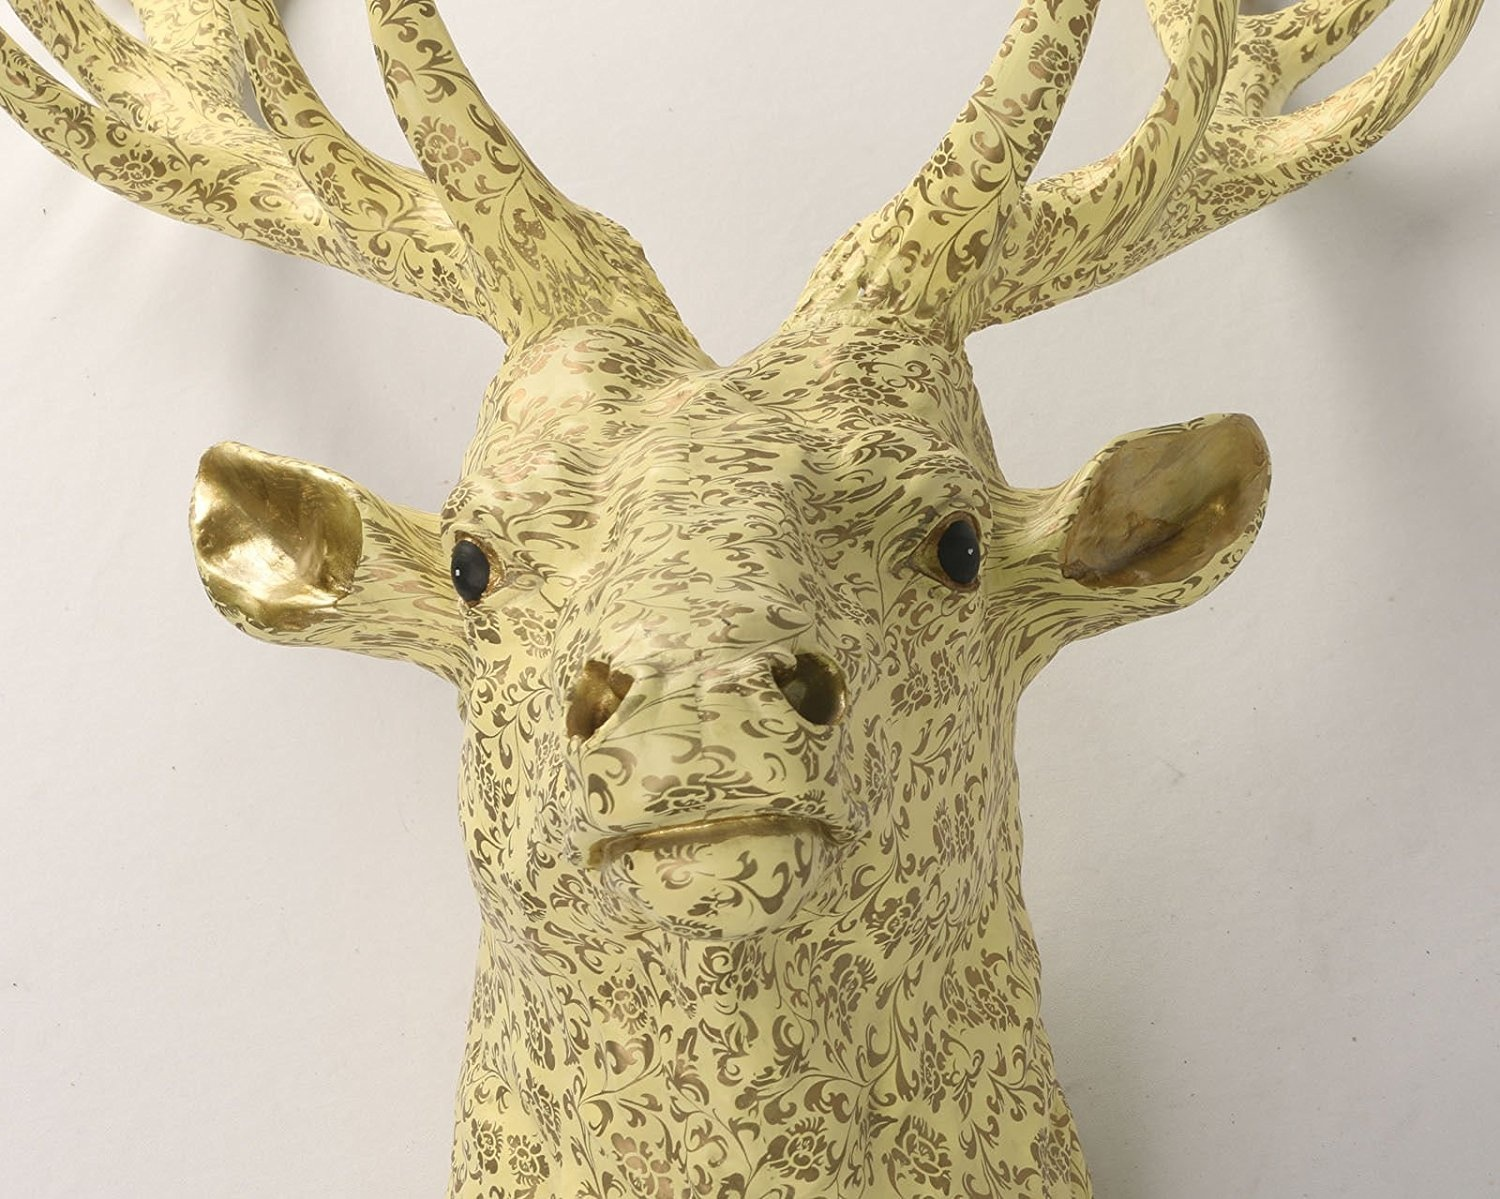 Resin Stag Head Homeware: Buy Online from Fishpond.co.nz